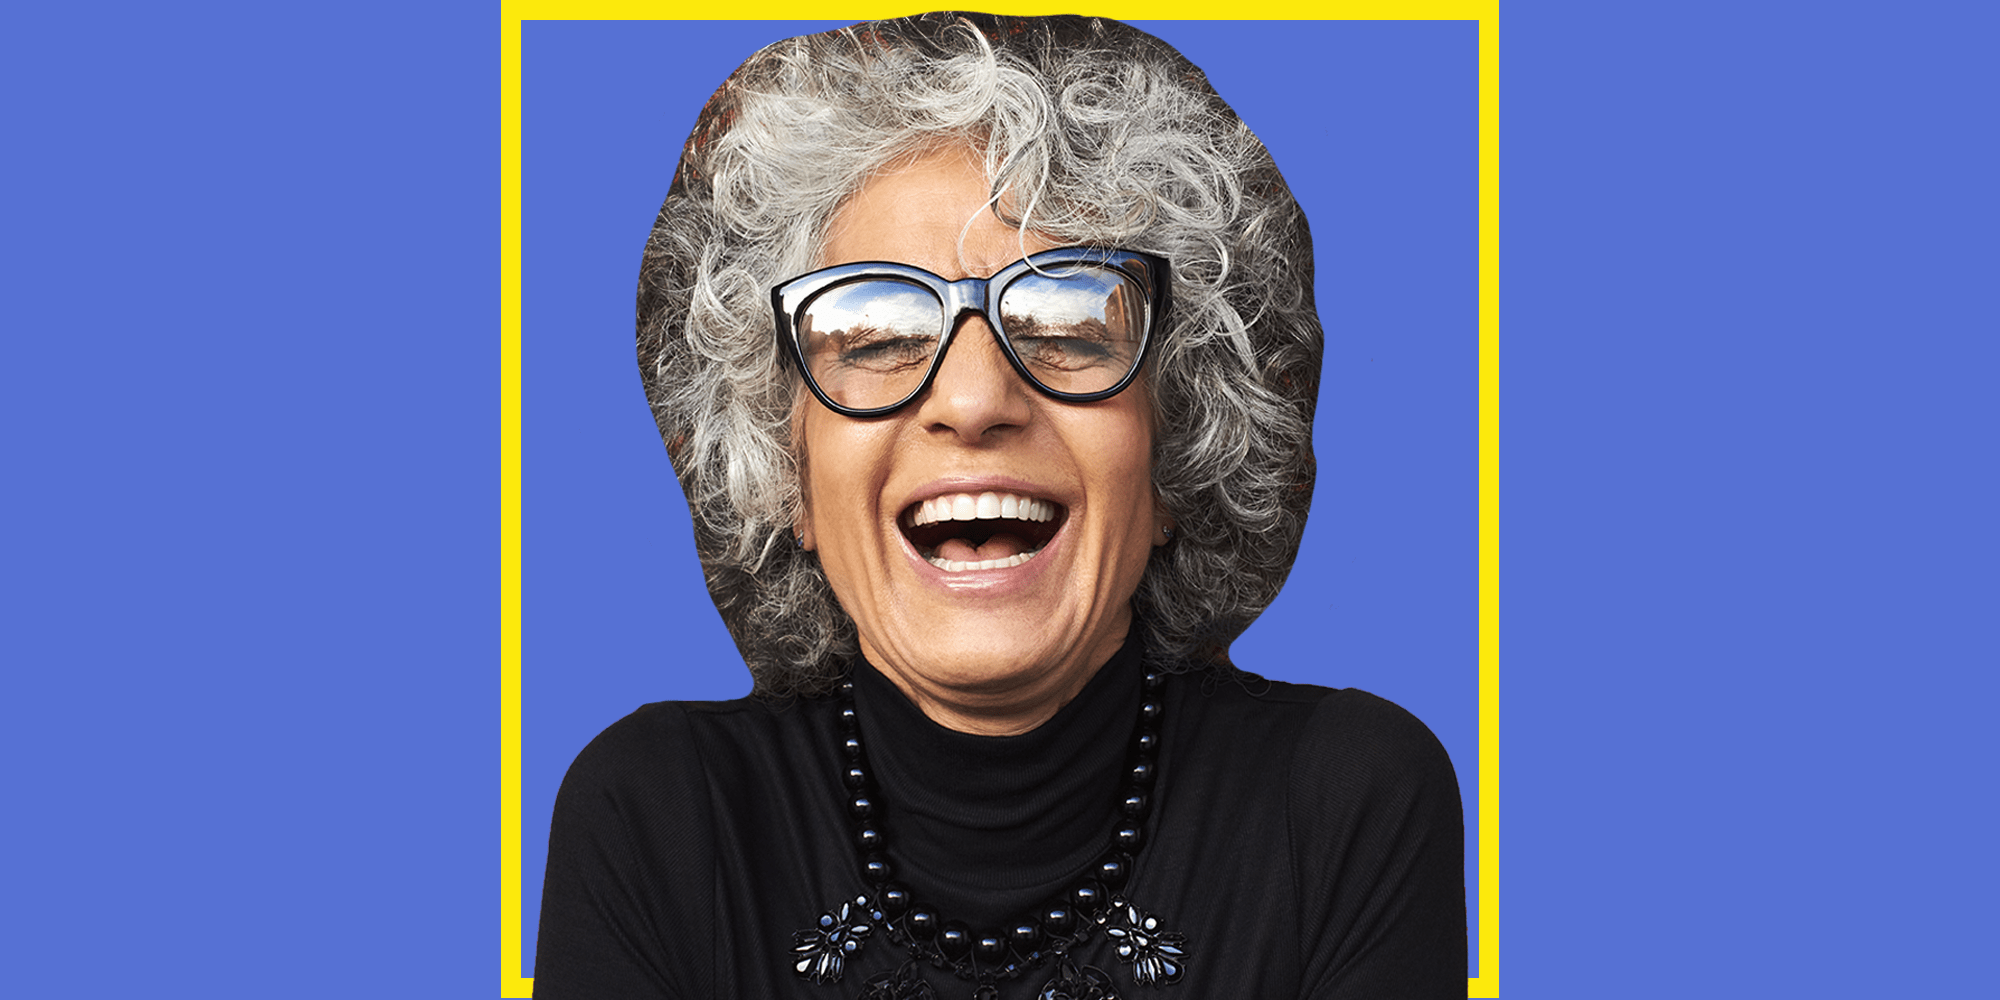 11 Best Shampoos For Gray Hair How To Keep Gray Hair Shiny